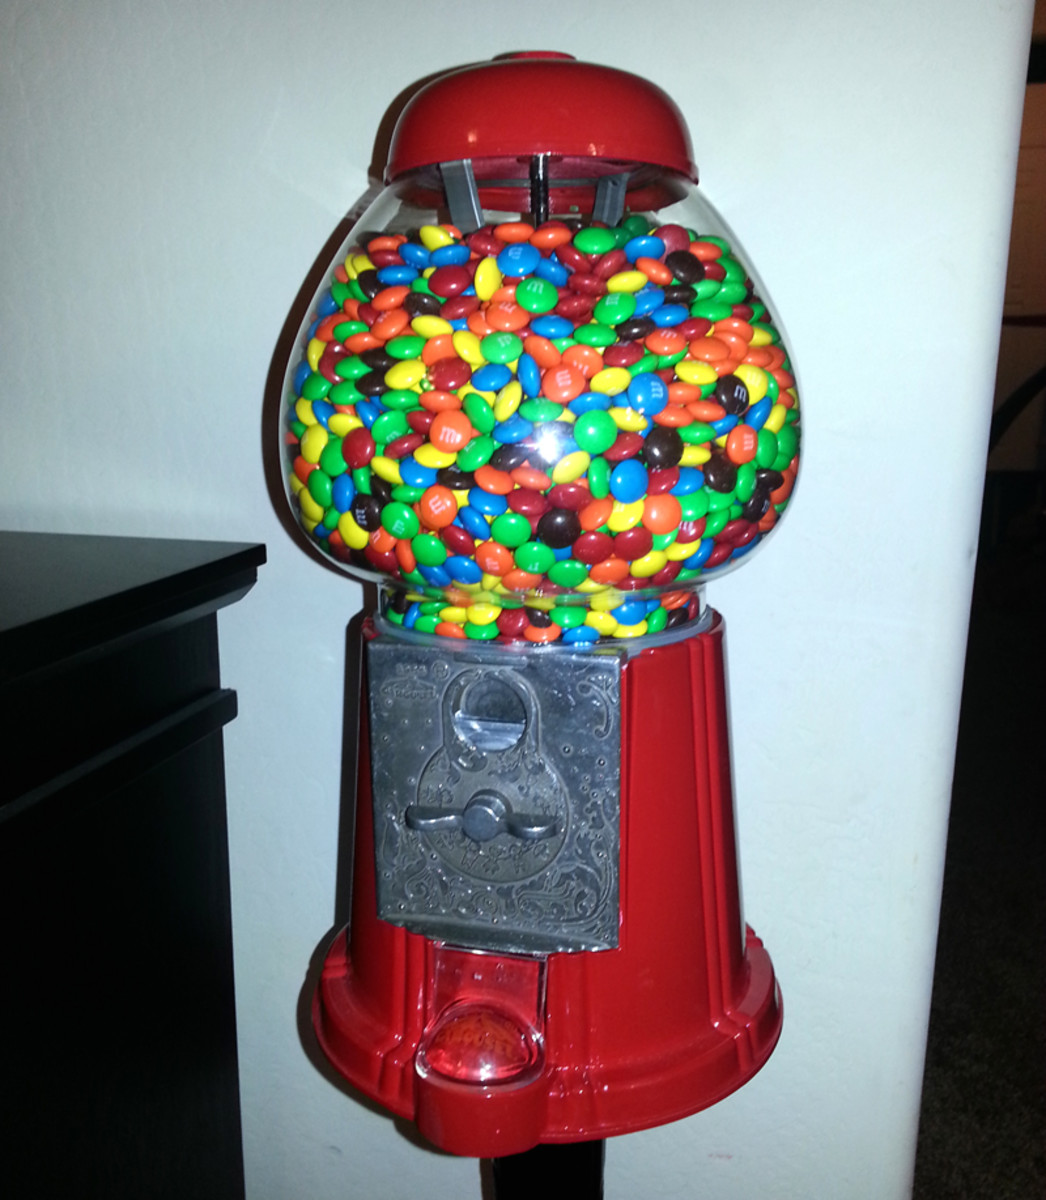 I recently purchased this King Gumball Machine for my kids. It holds about 5lbs of M&Ms (about 2,350 of them).